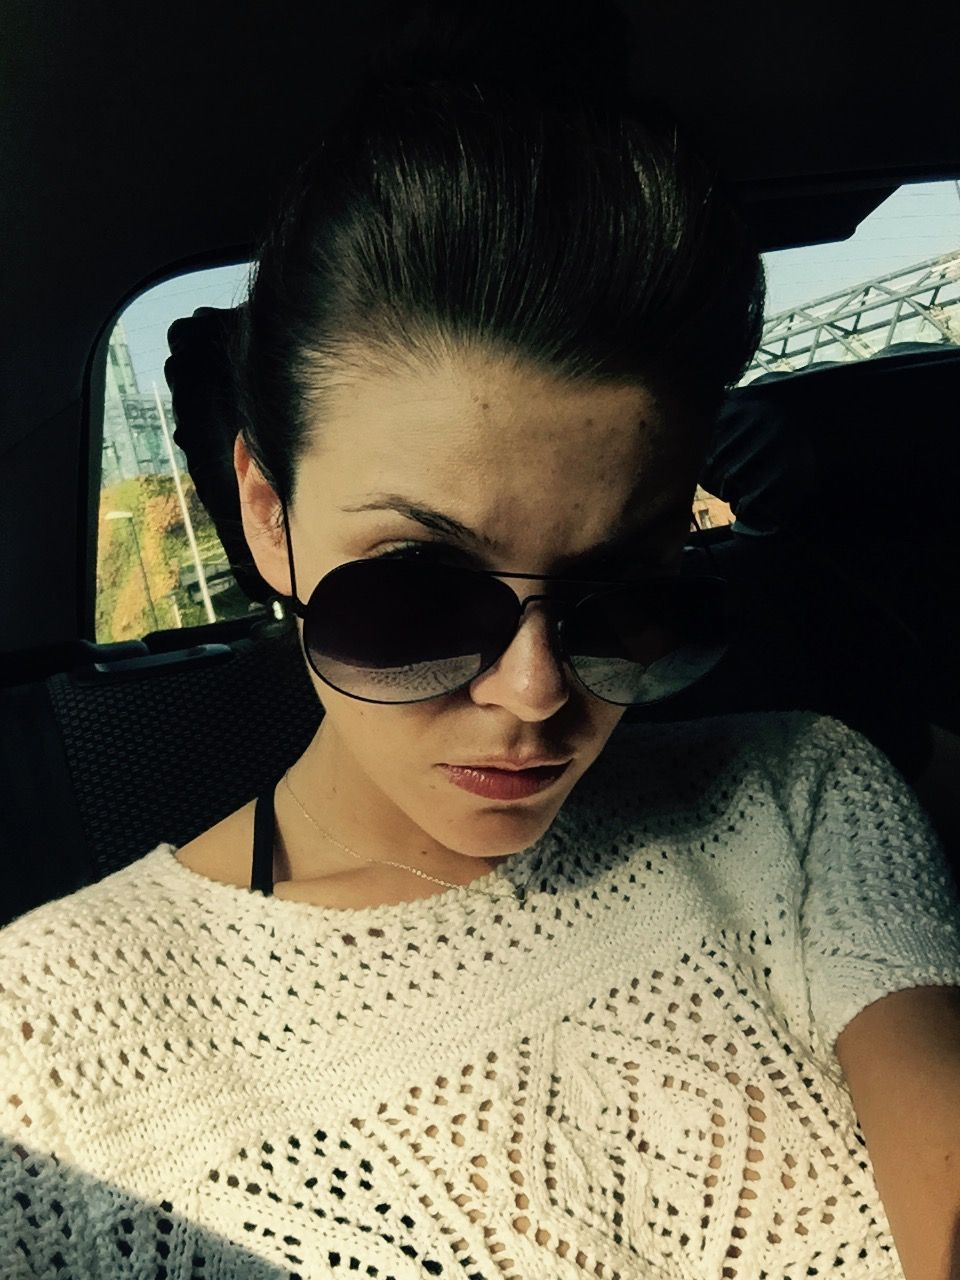 Faye-Brookes-Leaked-1-thefappening_nu_218a3b2.jpg